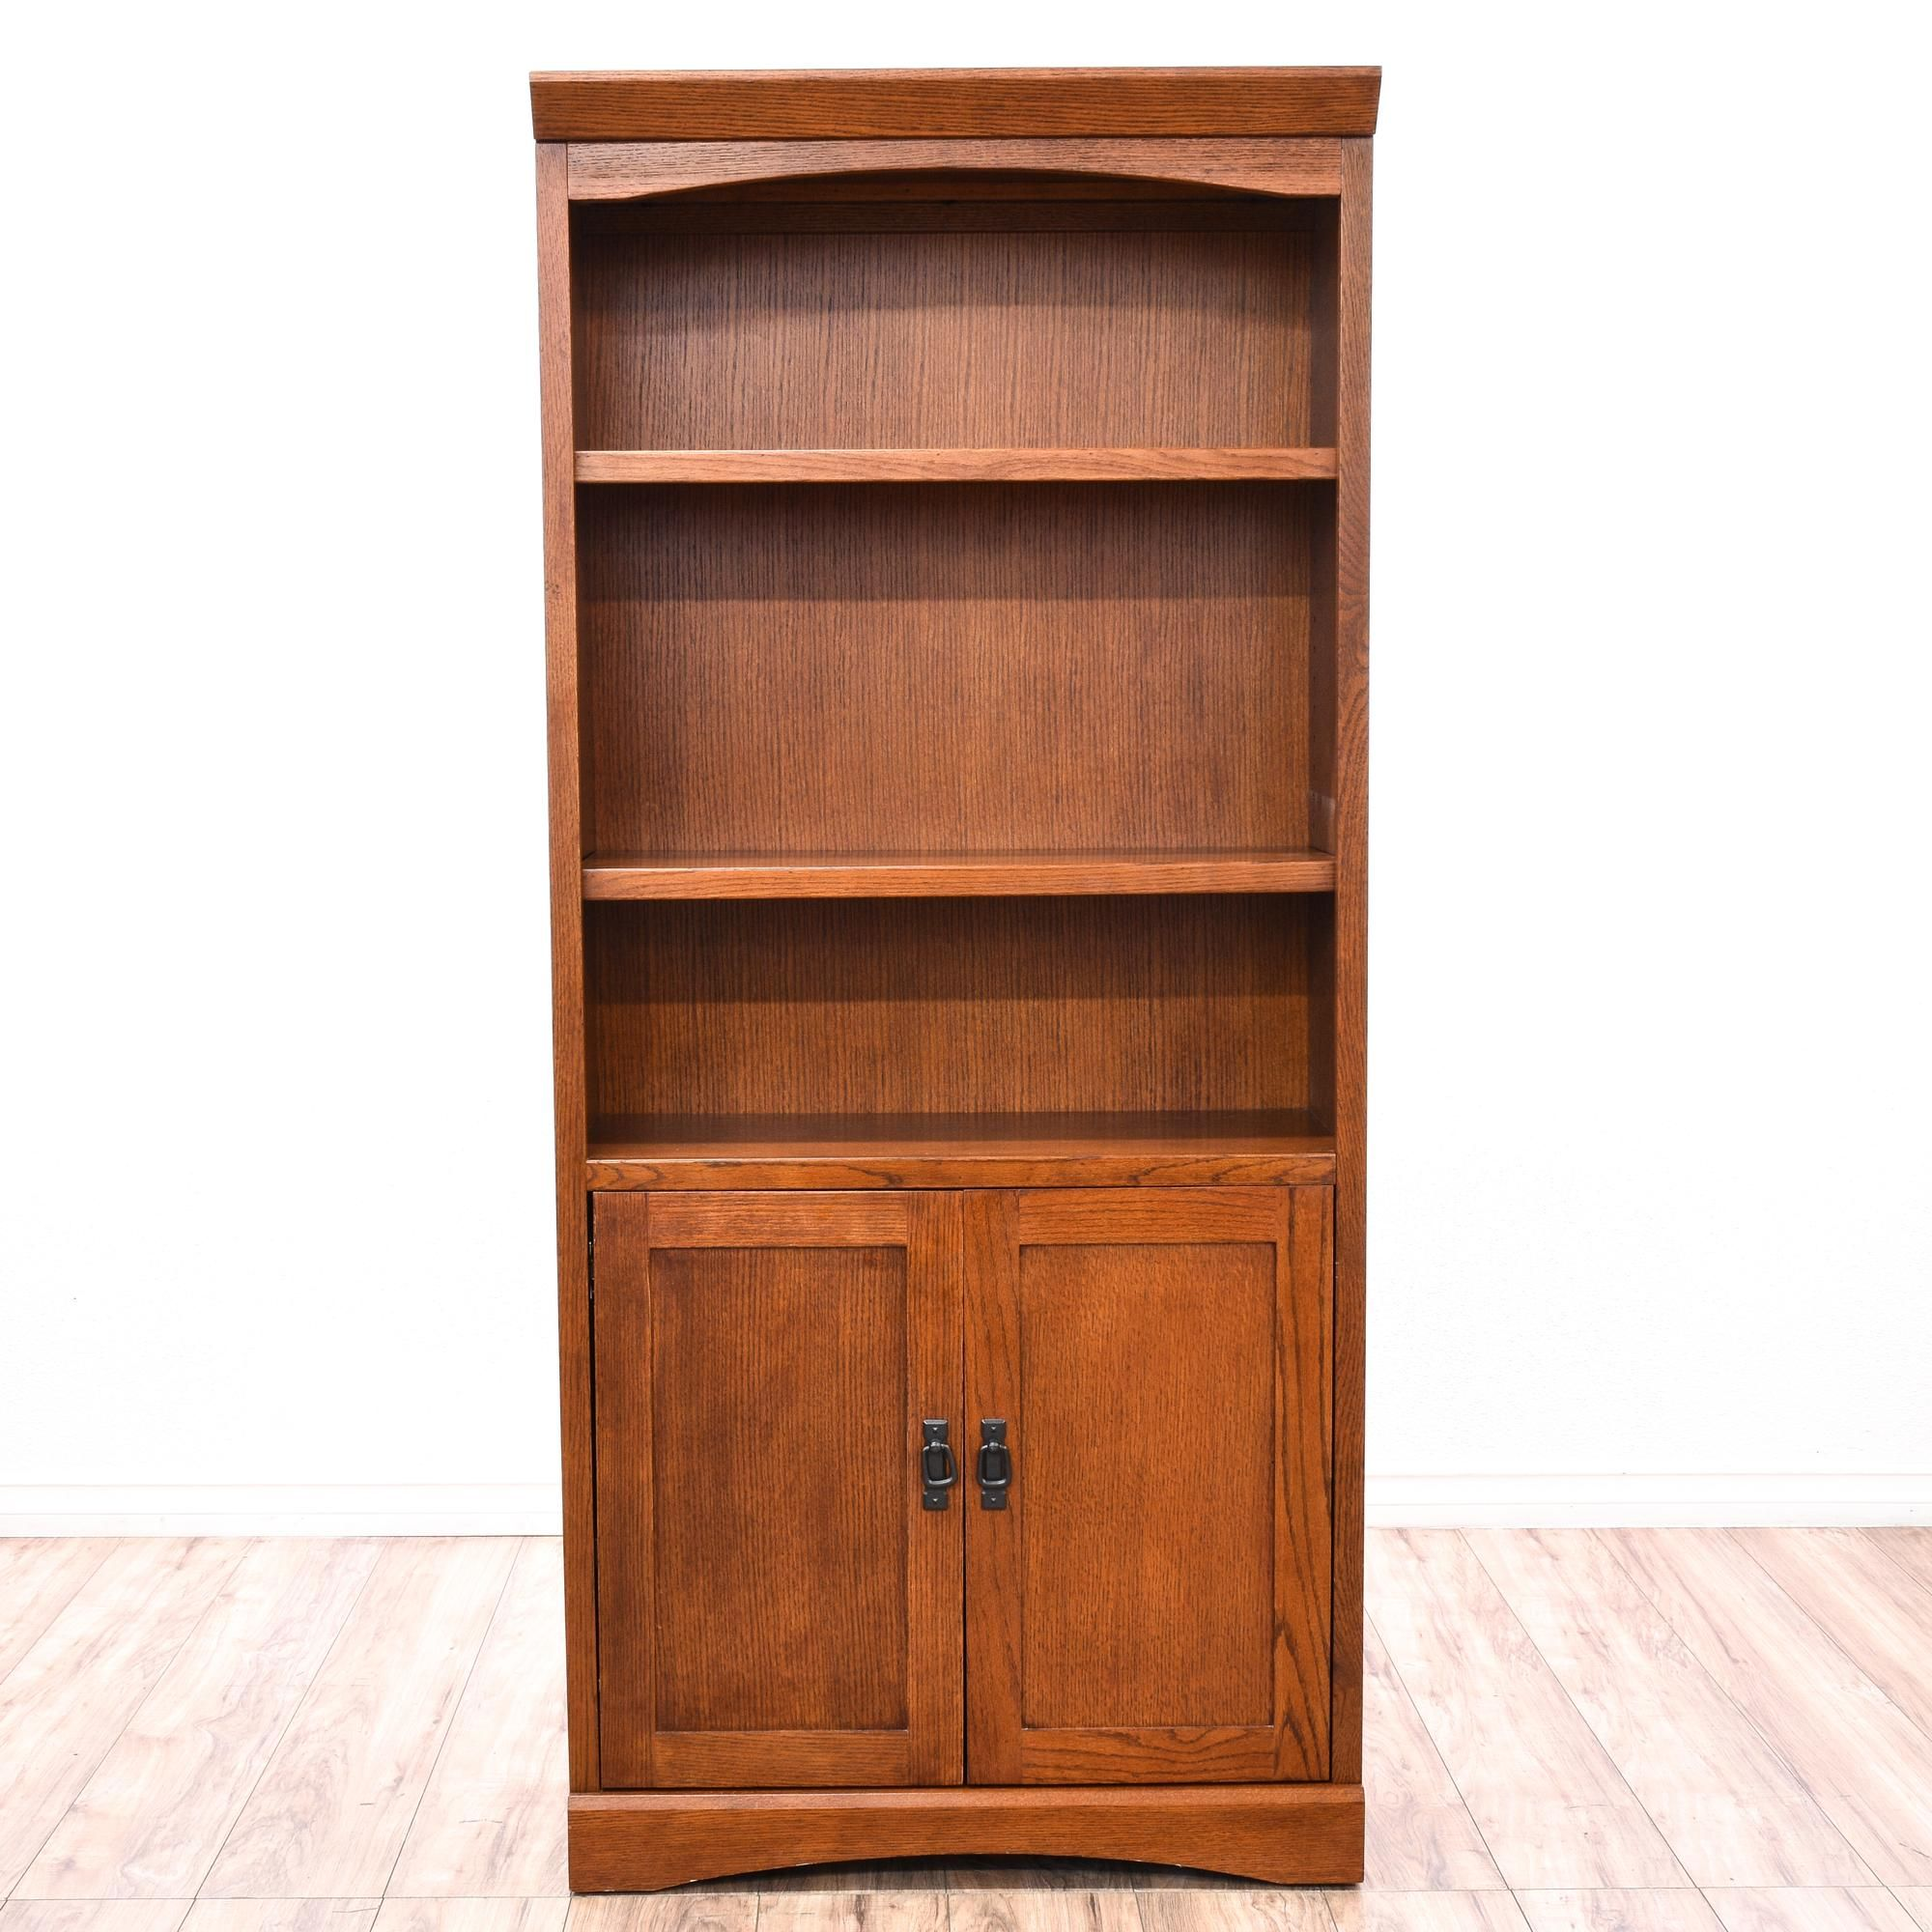 This Bookshelf Is Featured In A Solid Wood With Glossy Red Oak Finish Contemporary Style Bookcase Cabinet Has 3 Sections Bottom